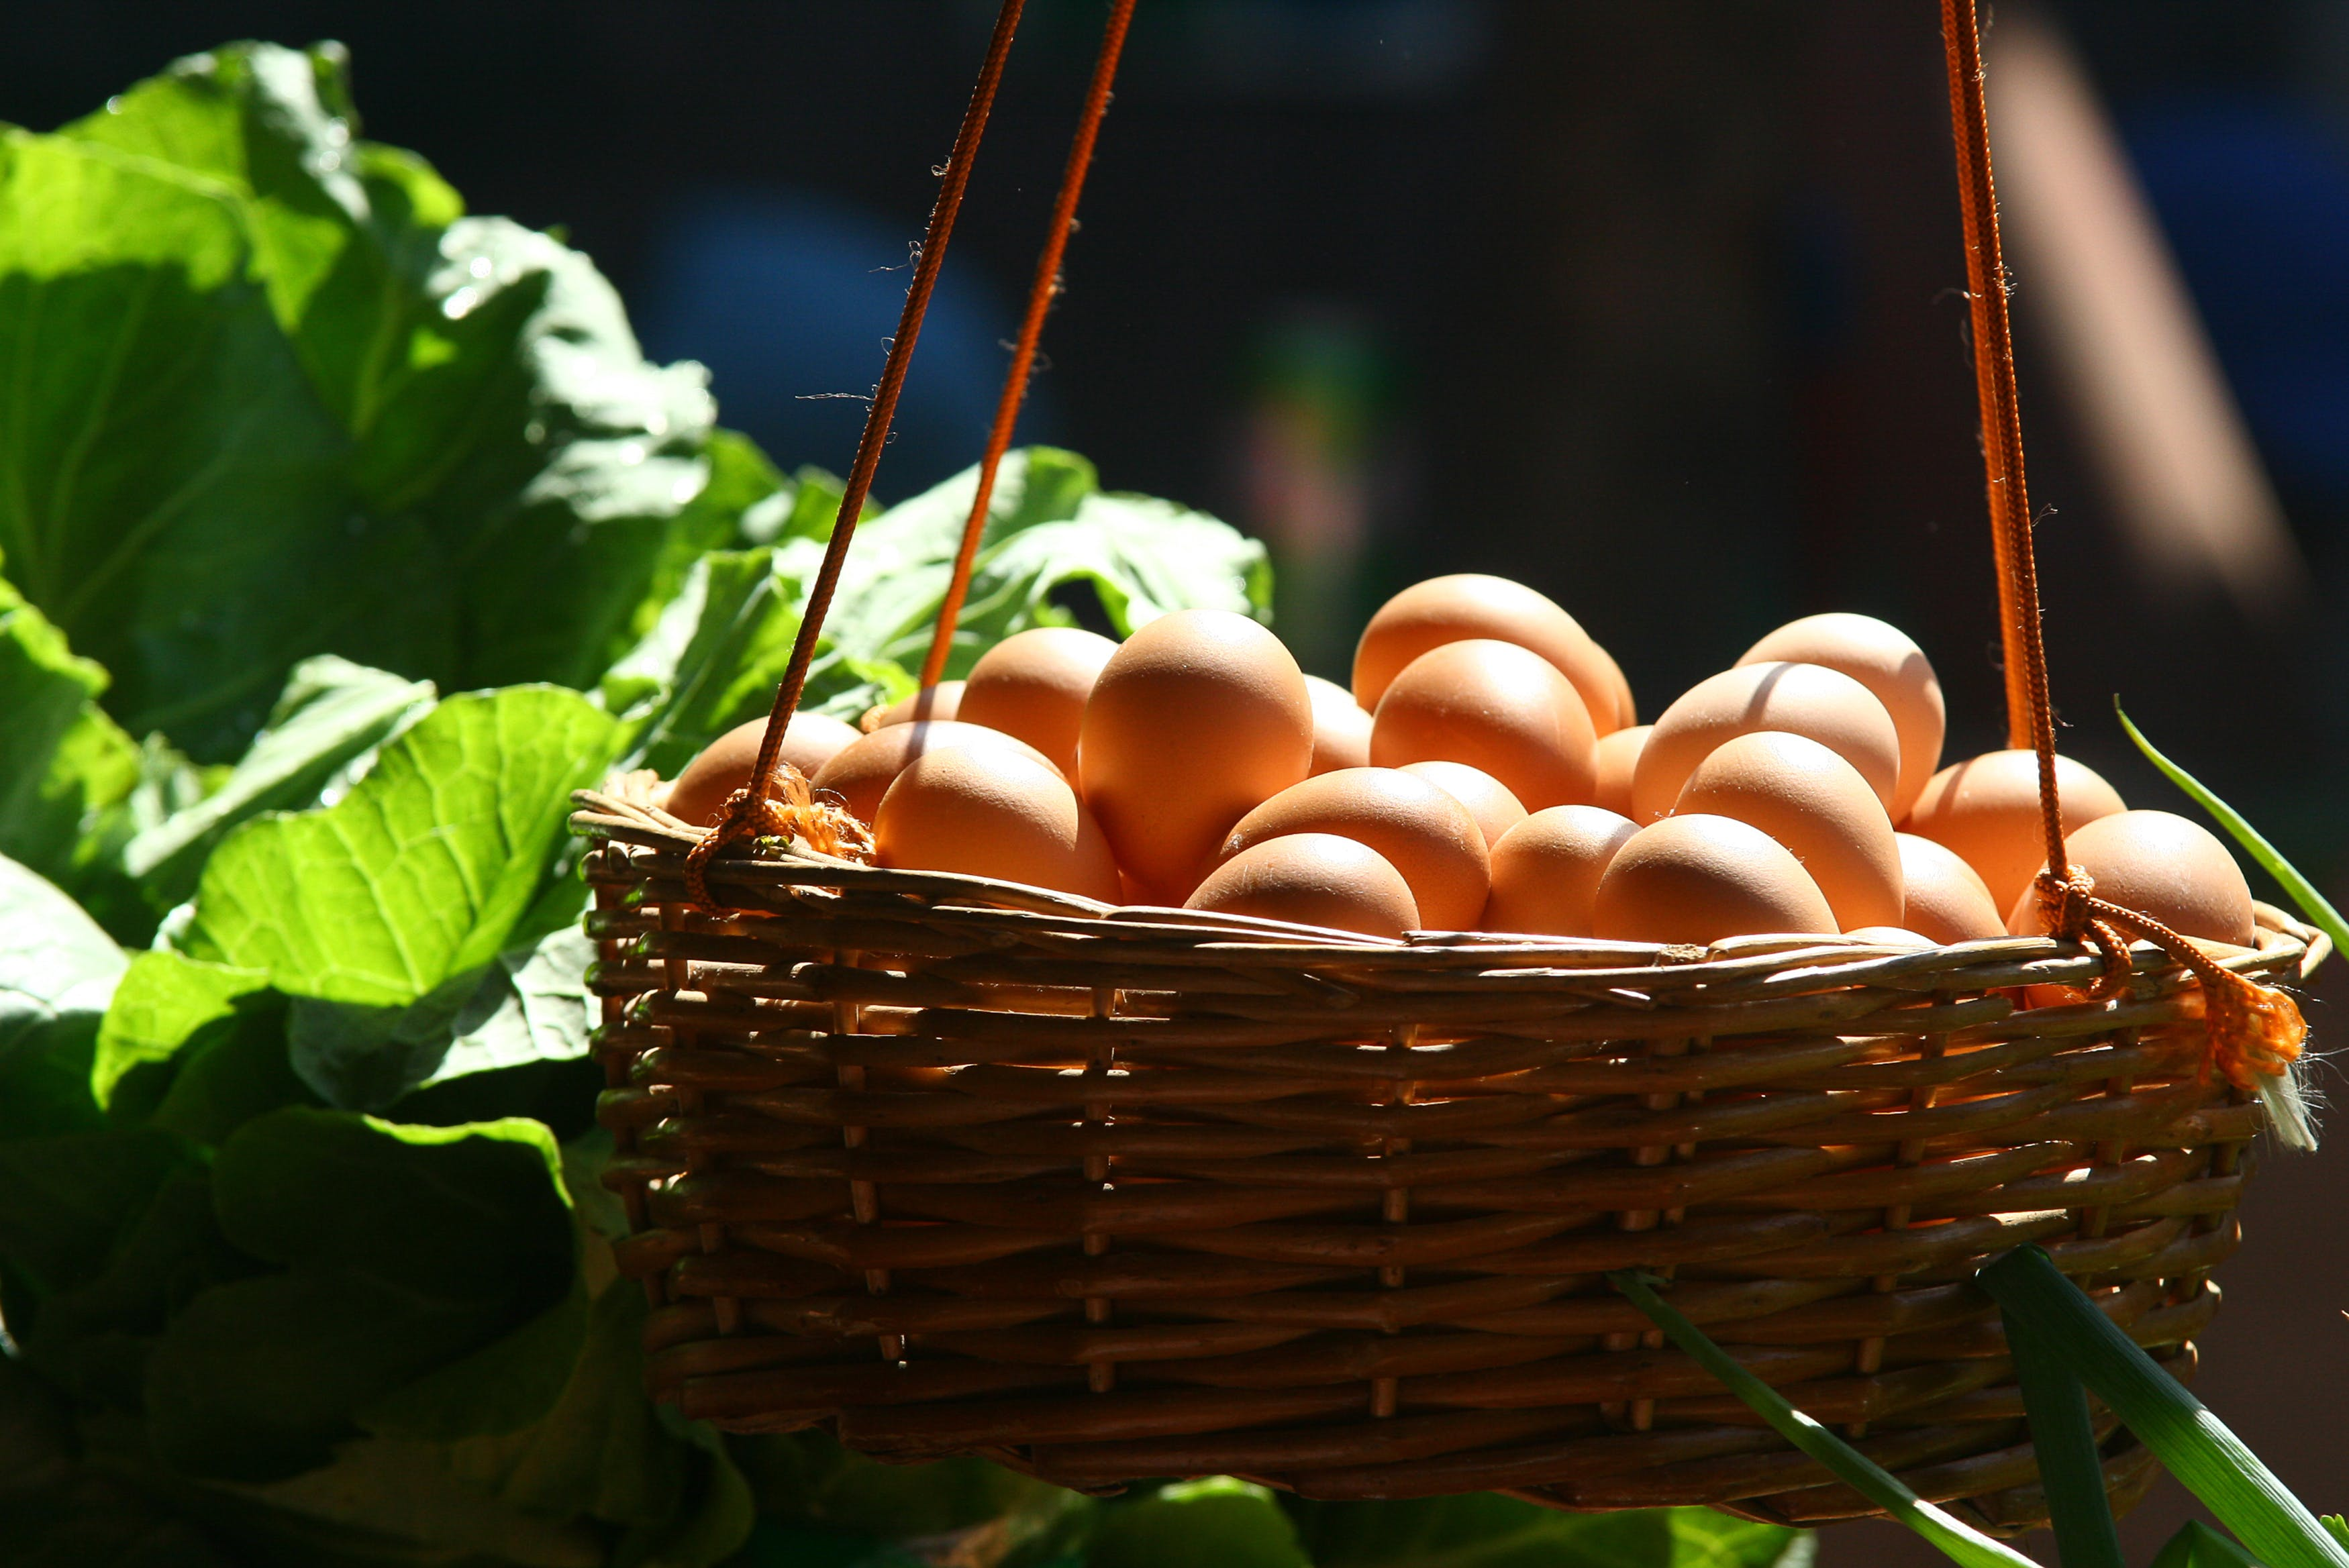 Basket Filled With Poultry Eggs